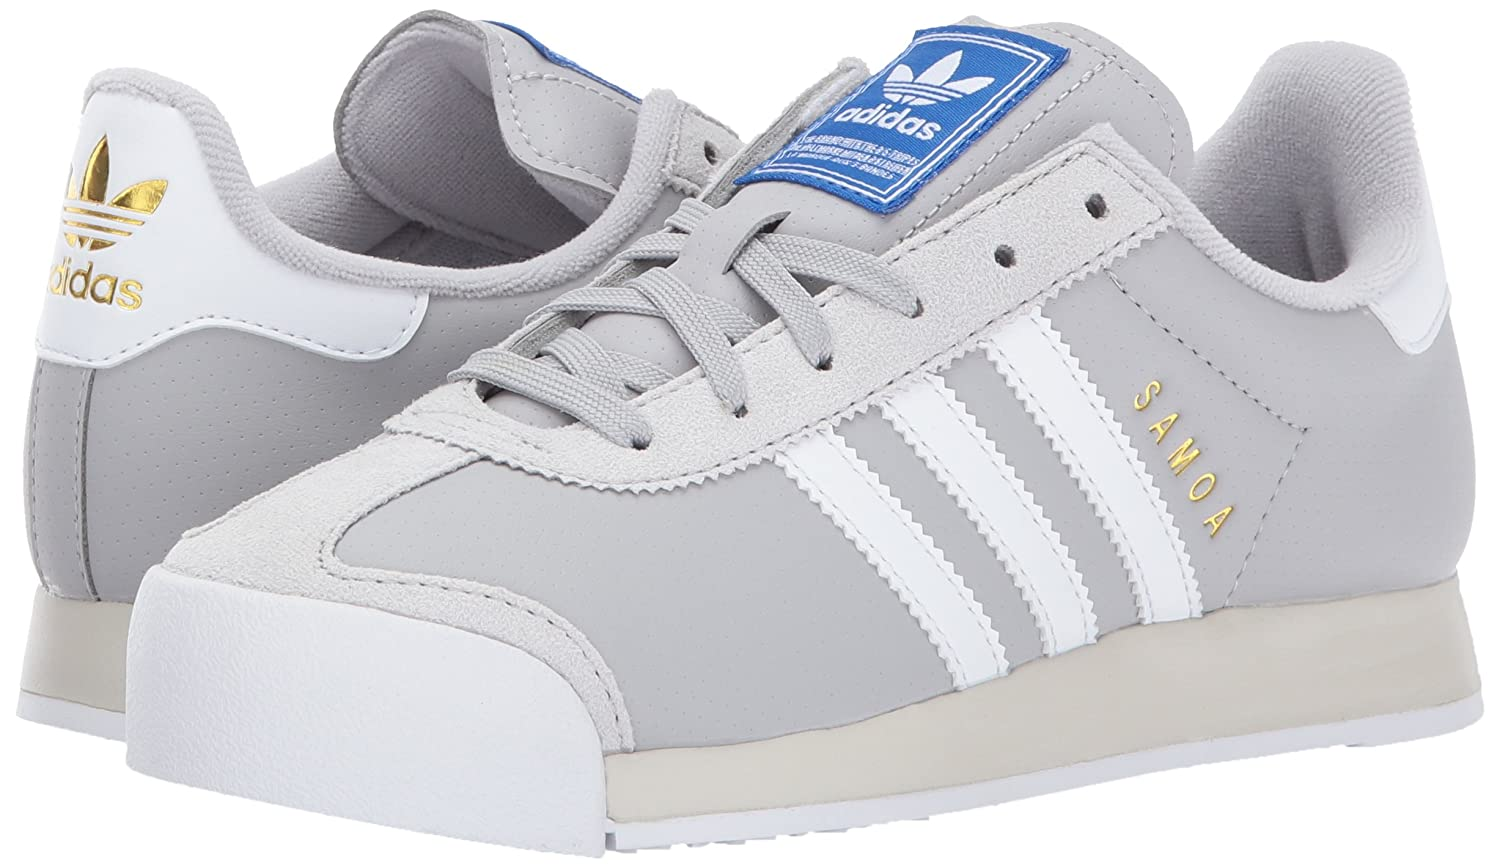 adidas Originals Women's Samoa Casual Shoes B01MYZTLLX 9.5 M US|Grey Two/White/Talc